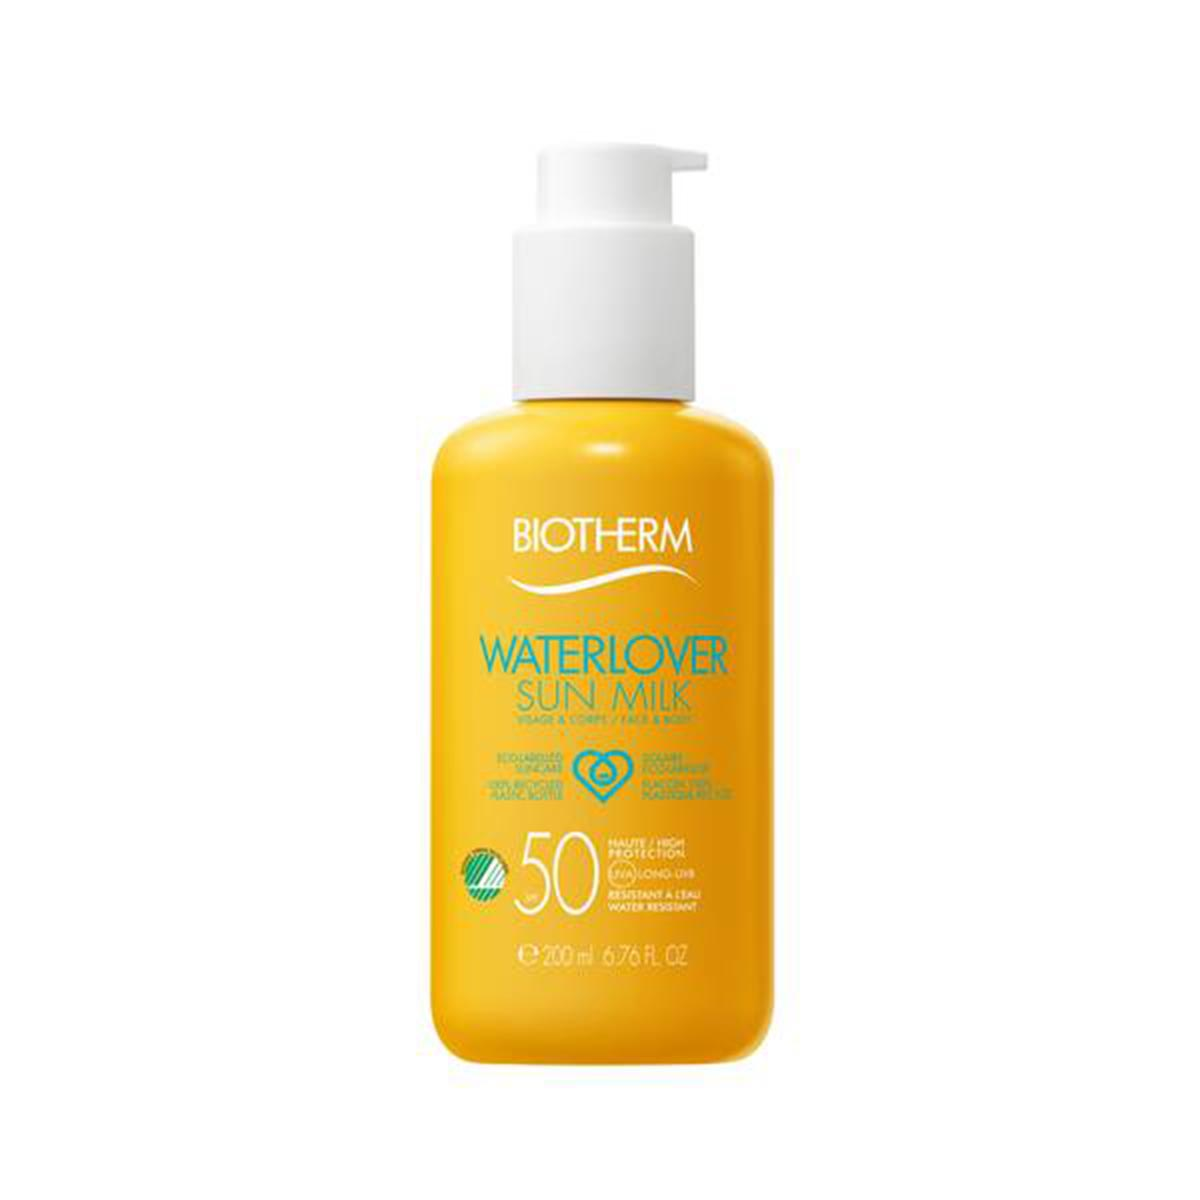 Biotherm eco designed waterproof waterlover sun milk spf50 200ml - BellezaMagica.com